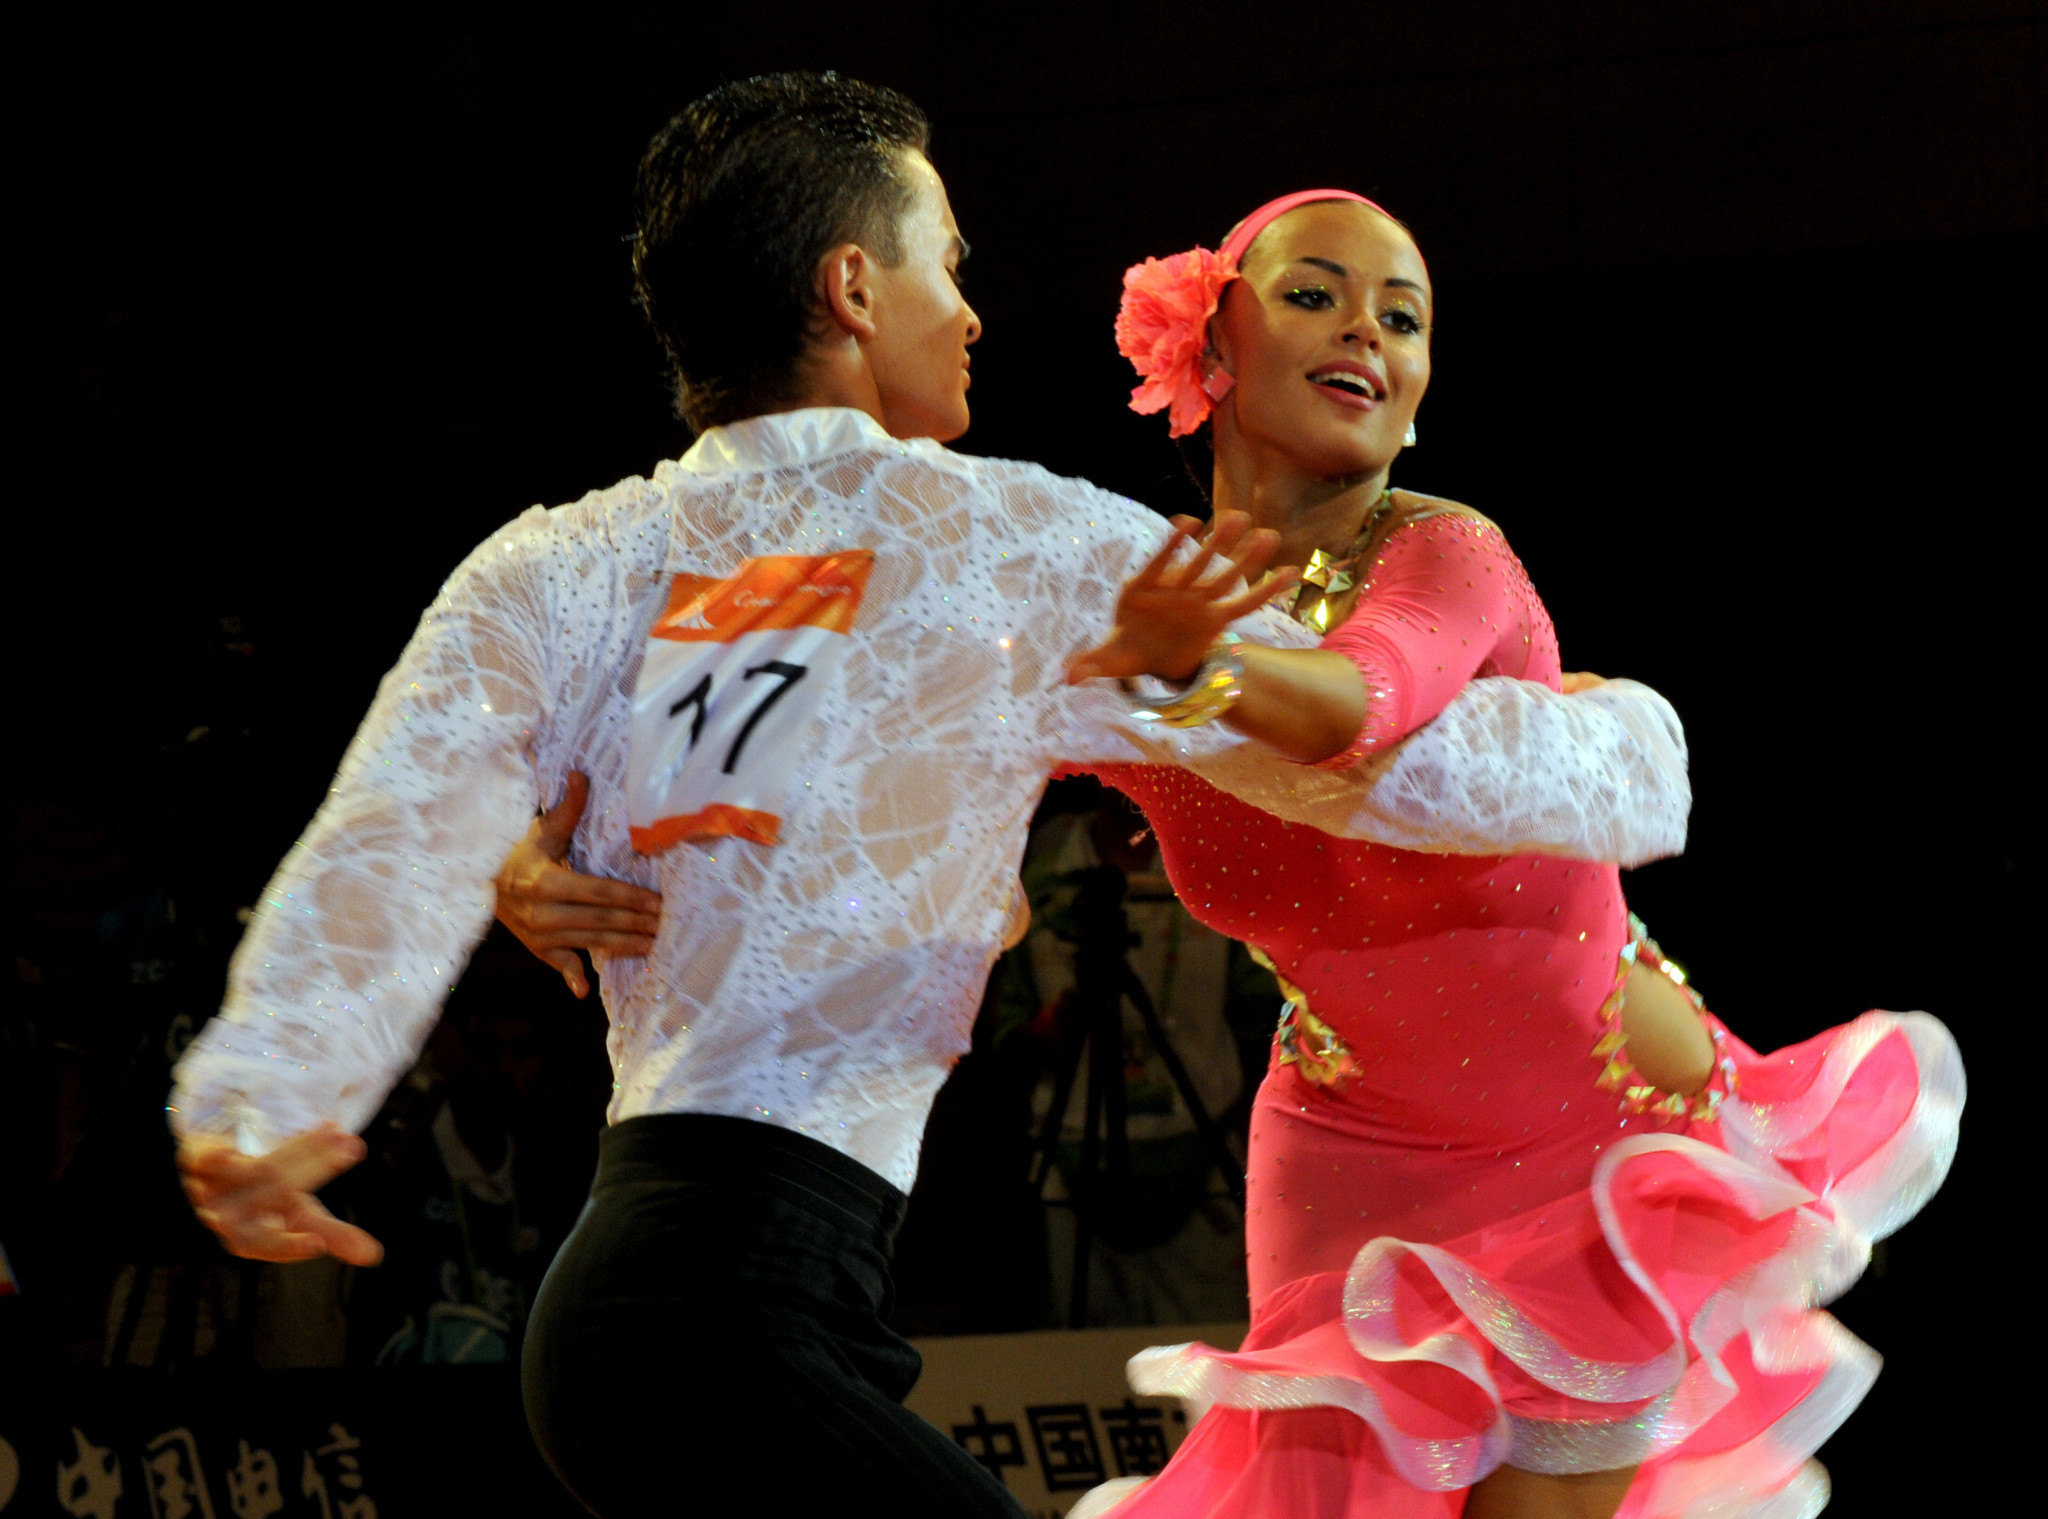 Dancesport has only appeared at the Asian Games once when China won all 10 gold medals at Guangzhou 2010